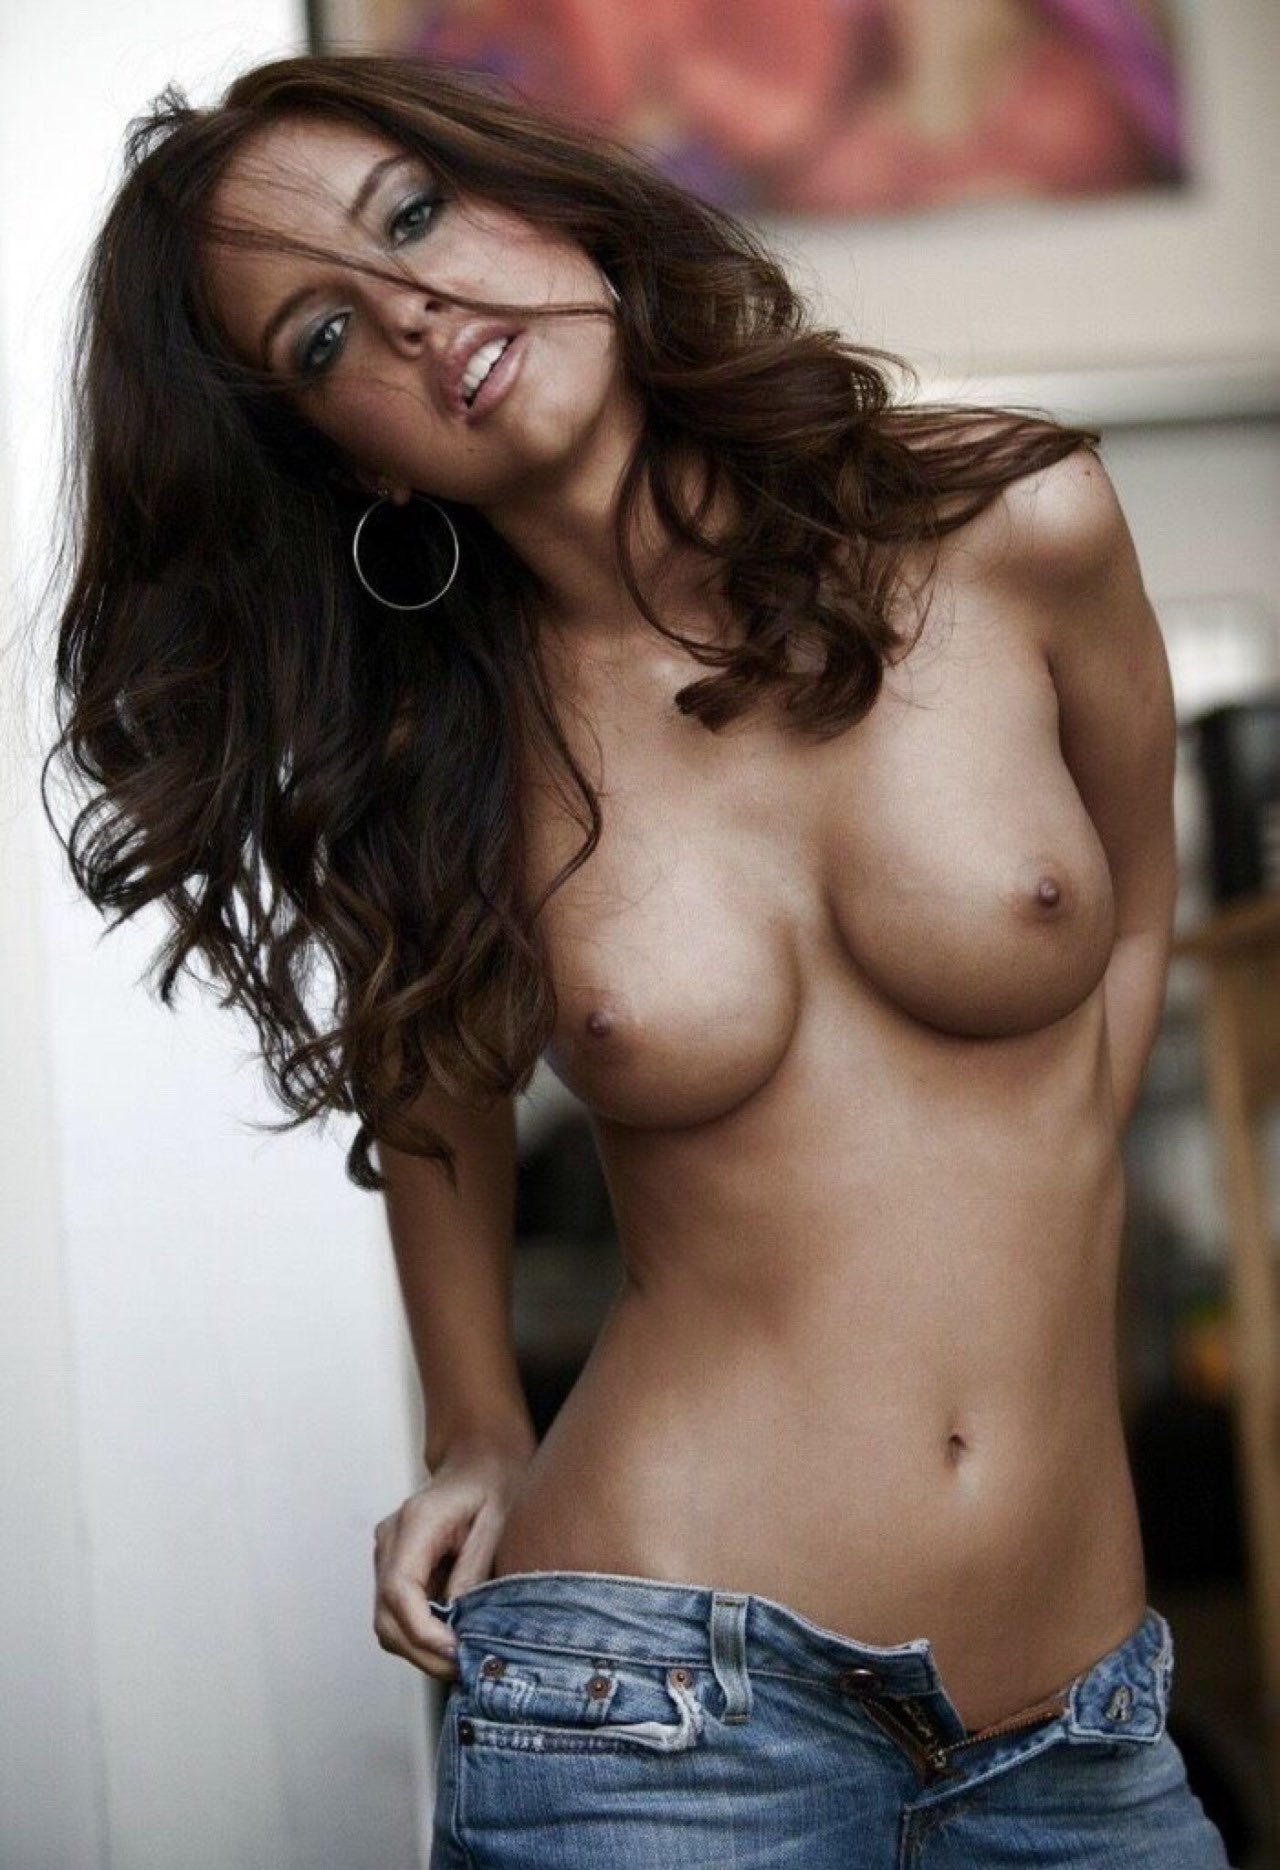 Hot topless girl wearing jeans #7